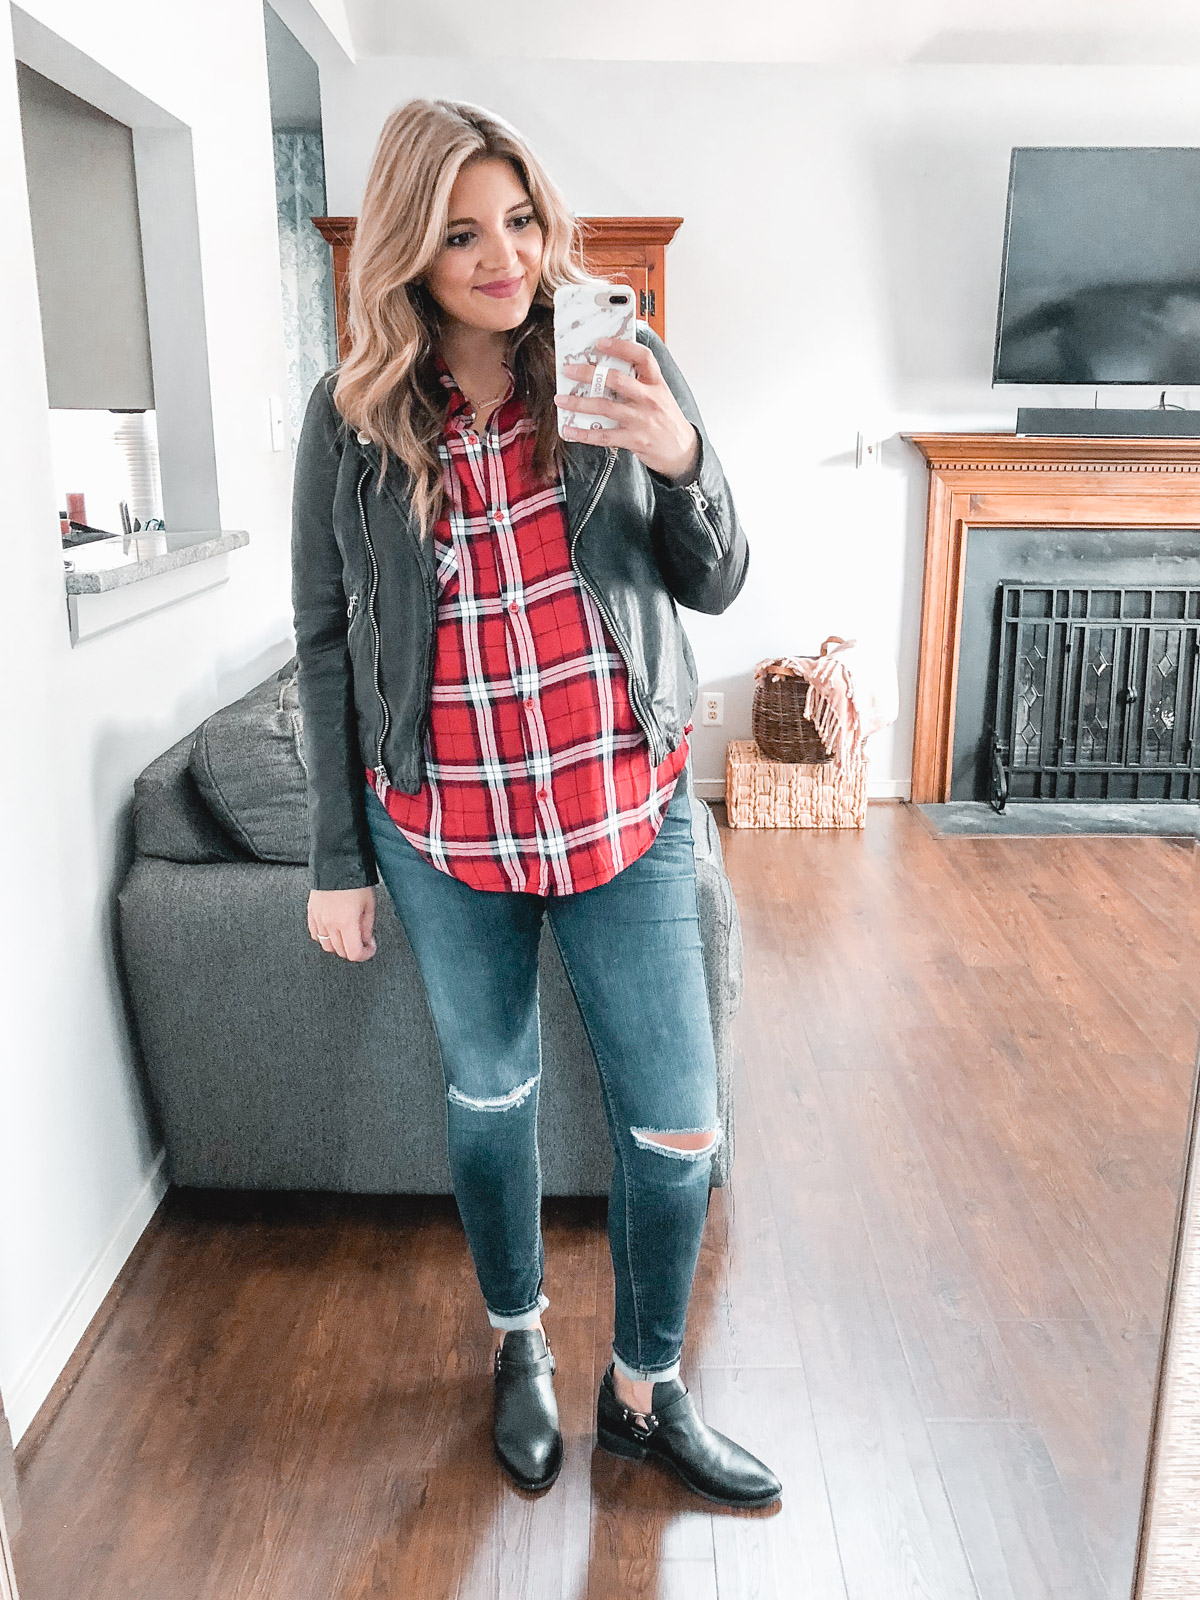 moto jacket plaid top outfit - Need plaid top outfit ideas? I'm sharing one $31 plaid top styled 15 different ways on bylaurenm.com!